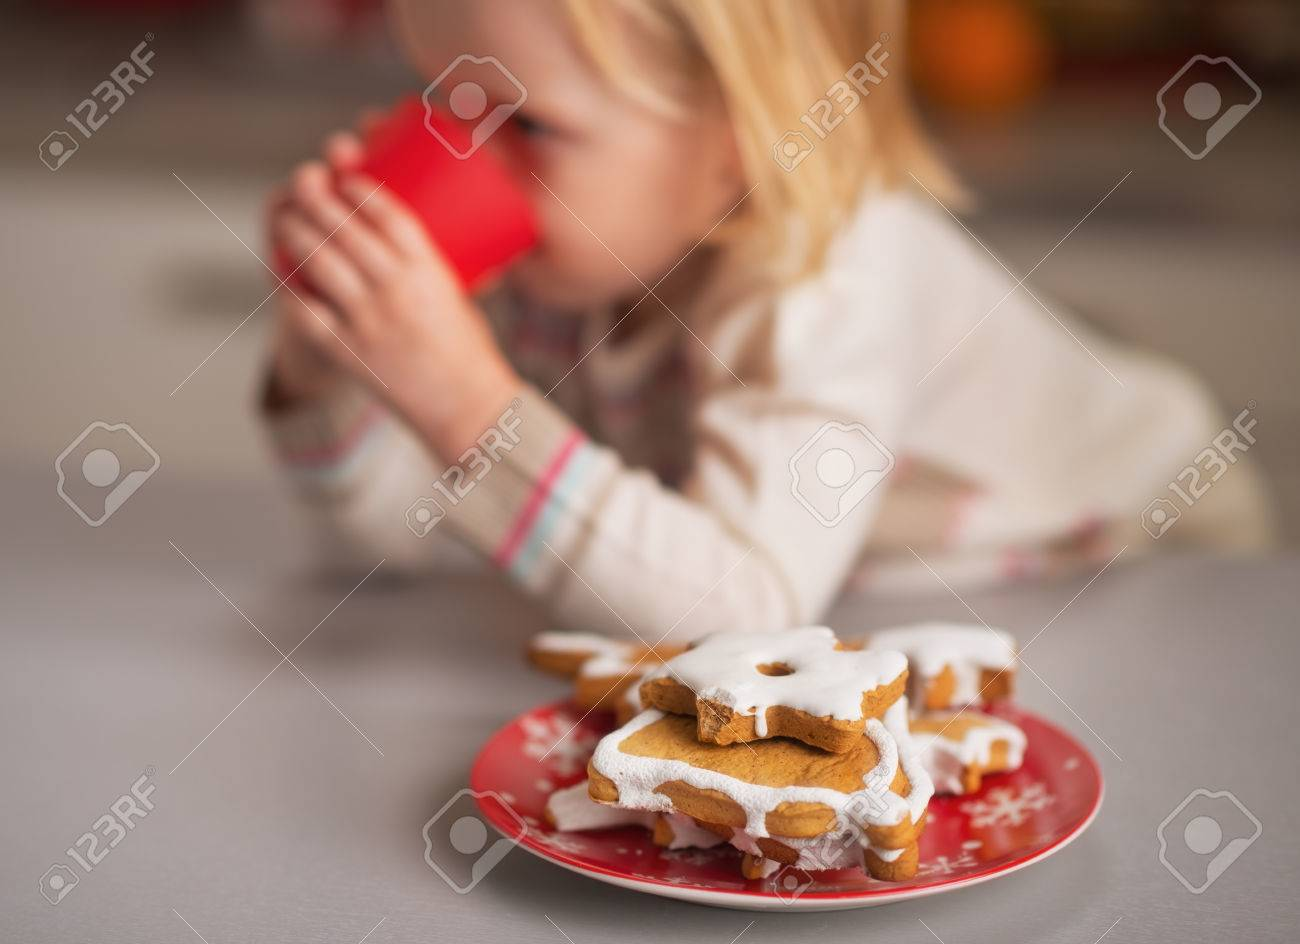 Closeup on homemade christmas cookies and baby drinking milk in background Stock Photo - 23533211